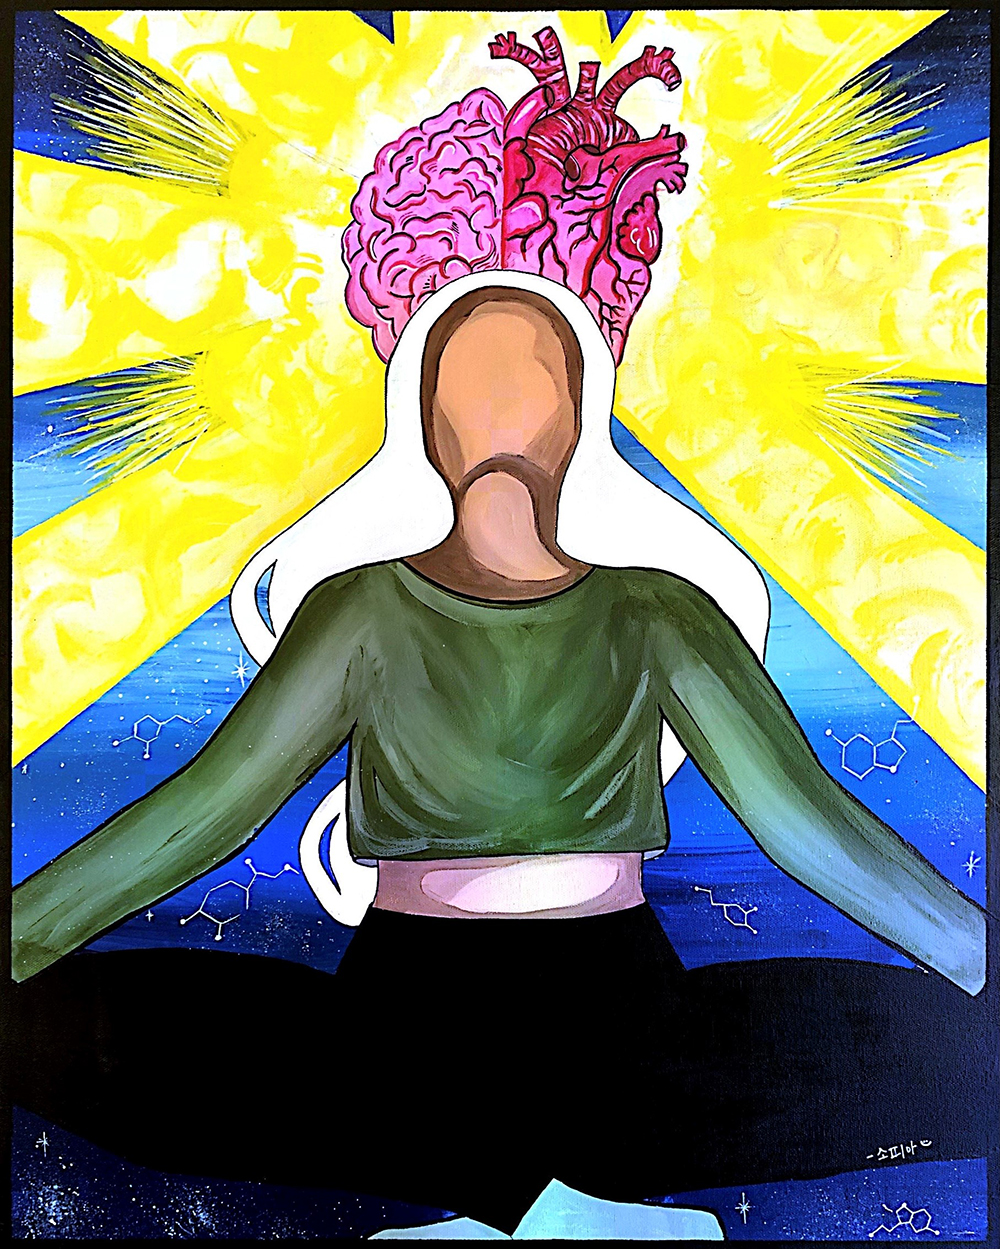 Painting of a crossed legged seated person, arms outstretched, head arched back, brain, heart and light streaks above them.